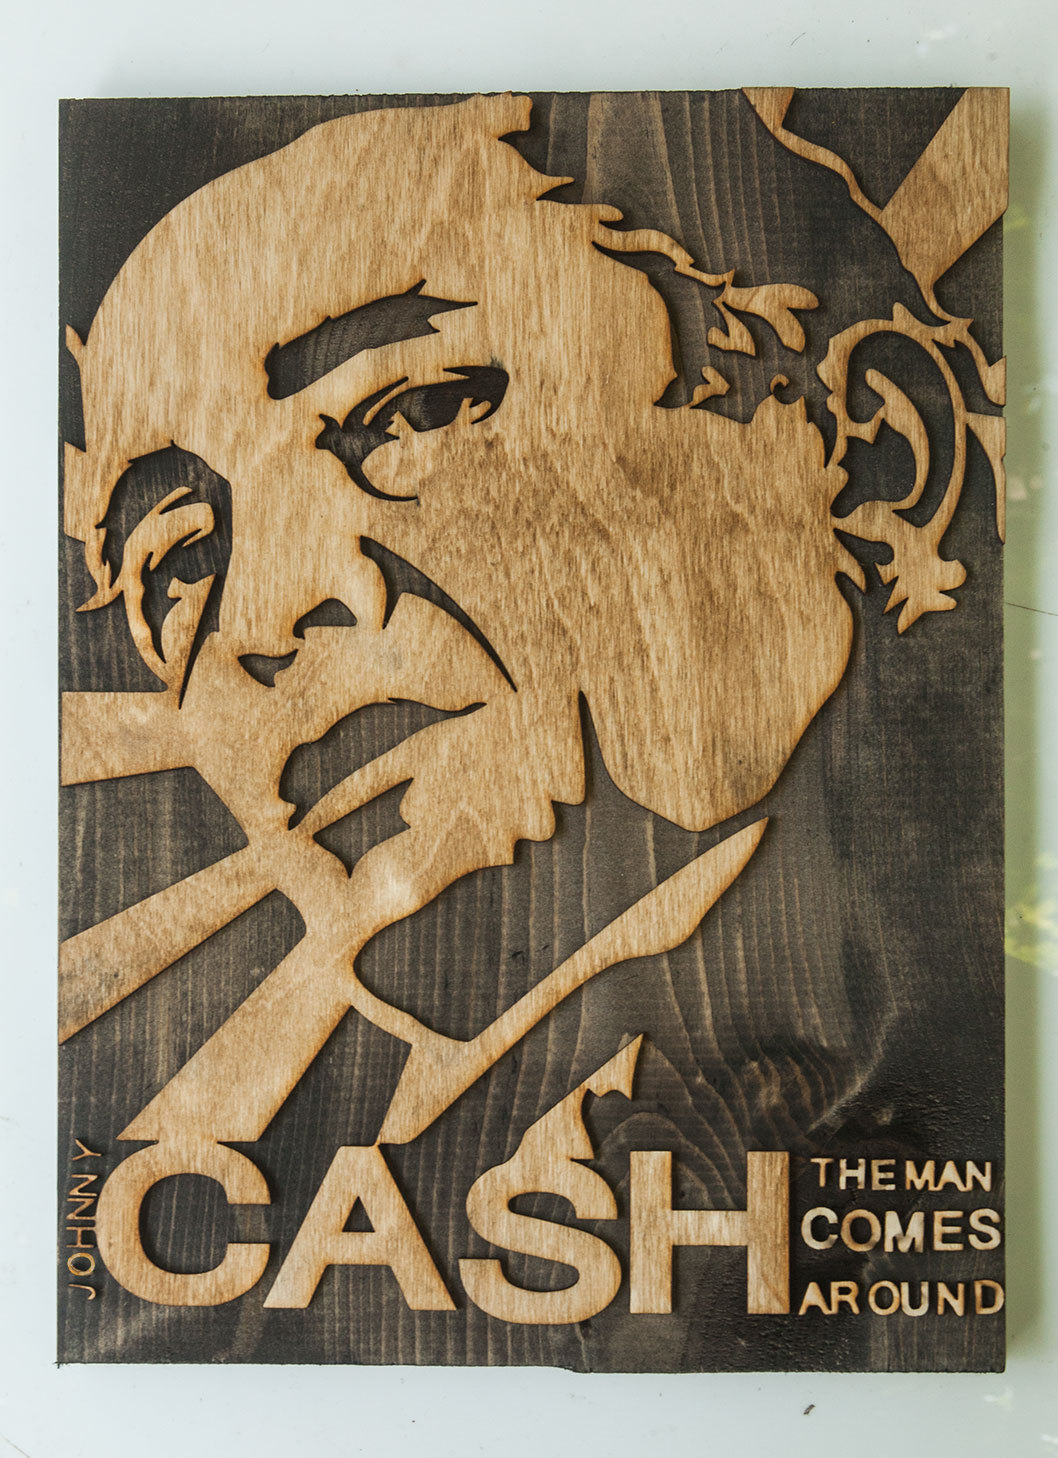 Wood Art Decor Best 3D Sculptured Wall Hanging Wooden Artjohnny Cash Country Wood Inspiration Design